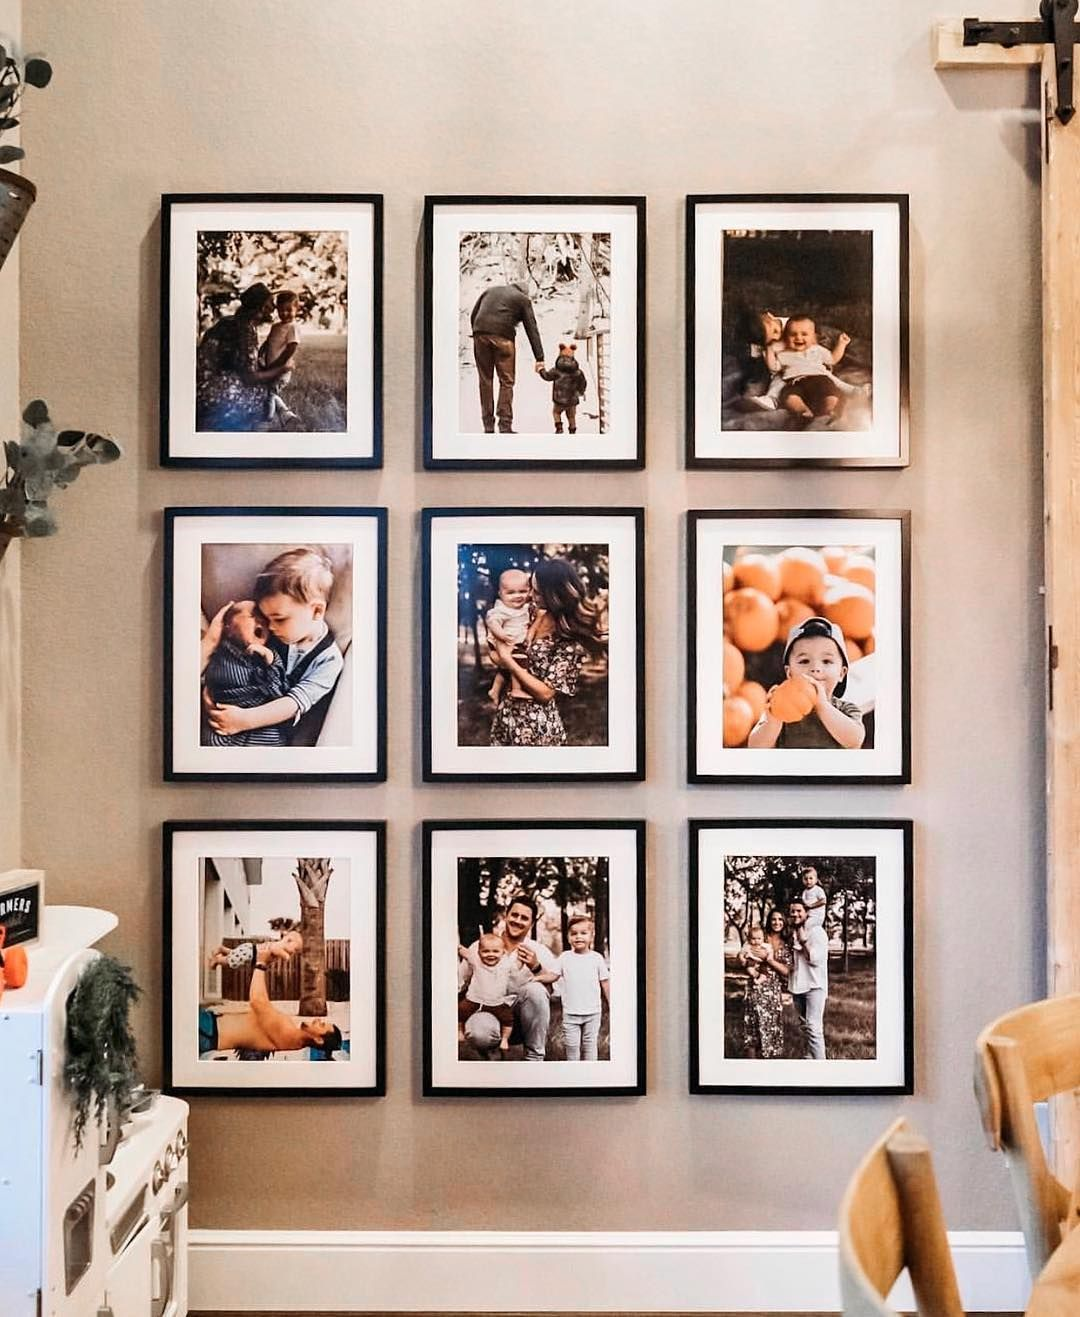 Pin On Wall Decor Living room family picture ideas